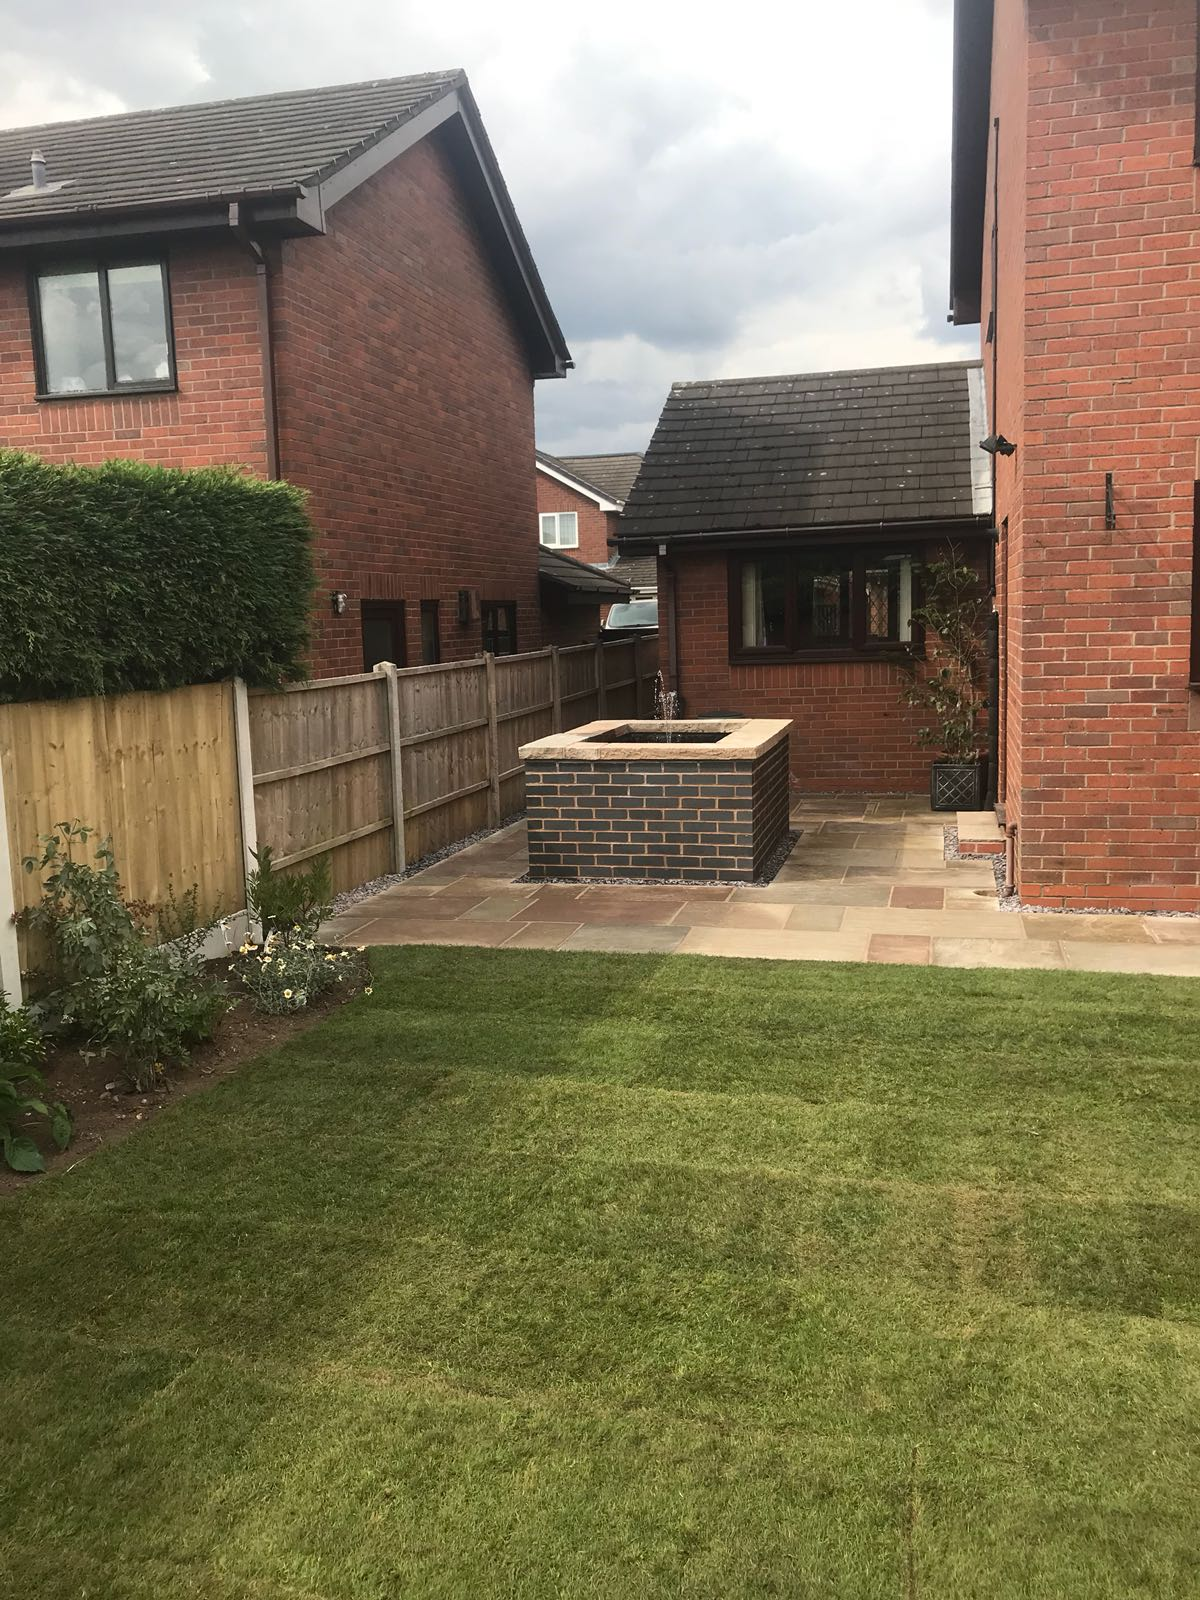 Landscaping - Turfing, Patio Area and Water Feature Pond